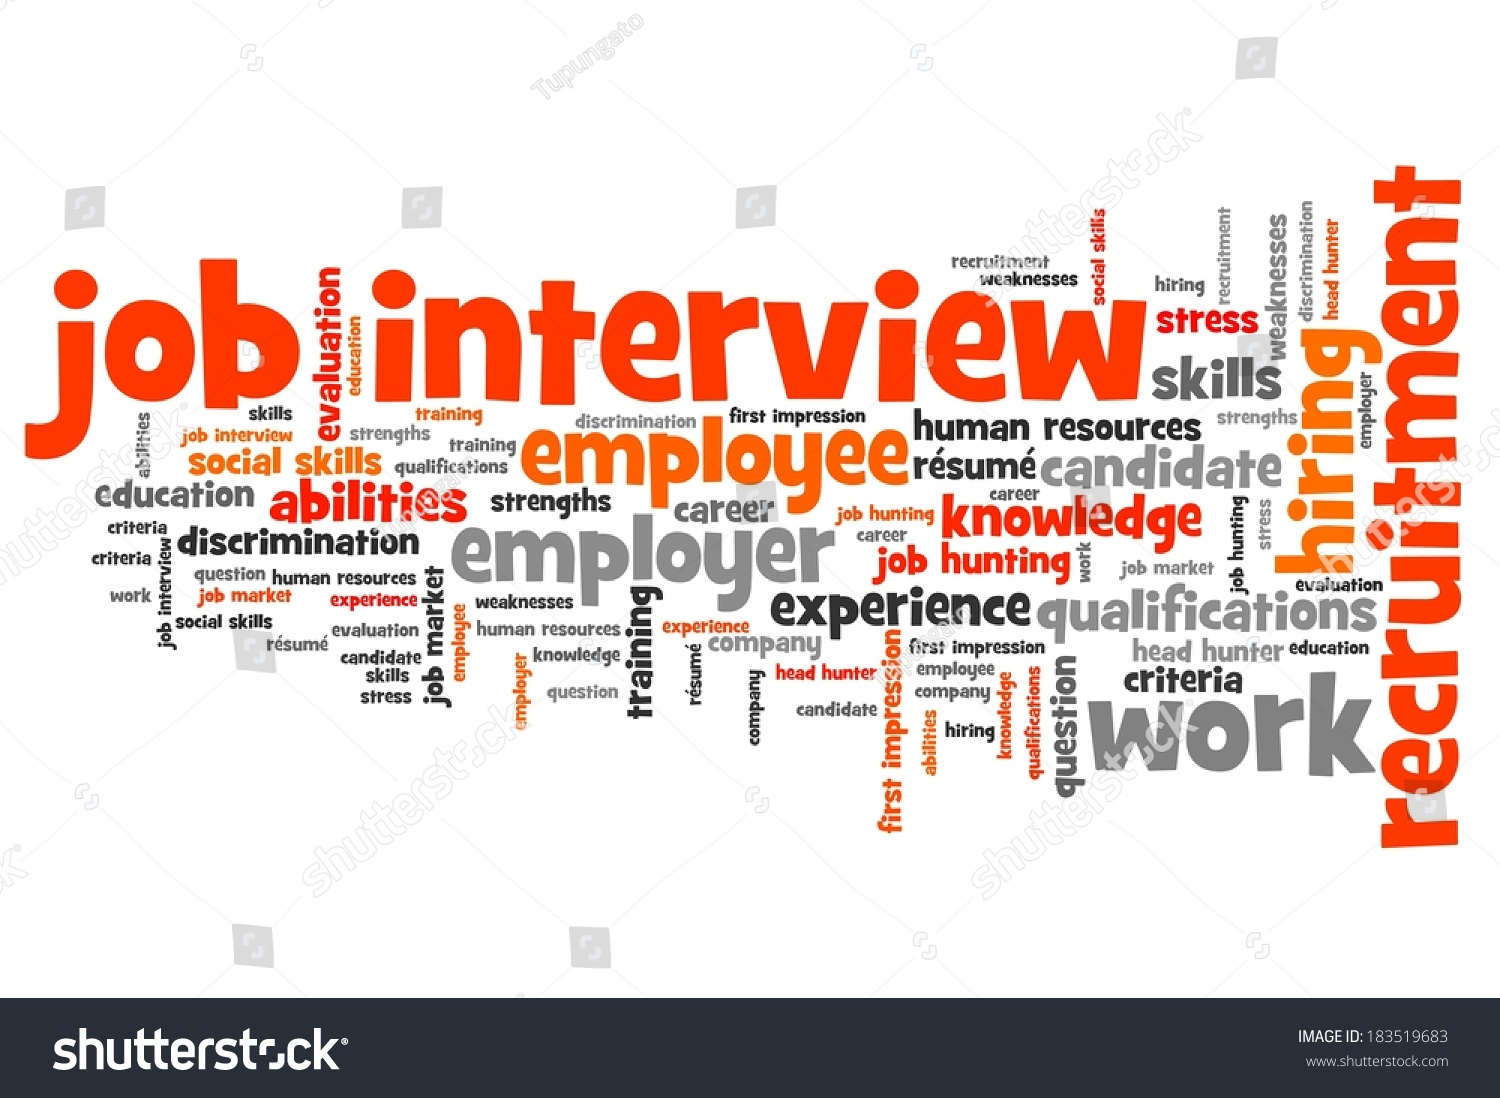 job interview issues concepts word cloud stock illustration job interview issues and concepts word cloud illustration word collage concept